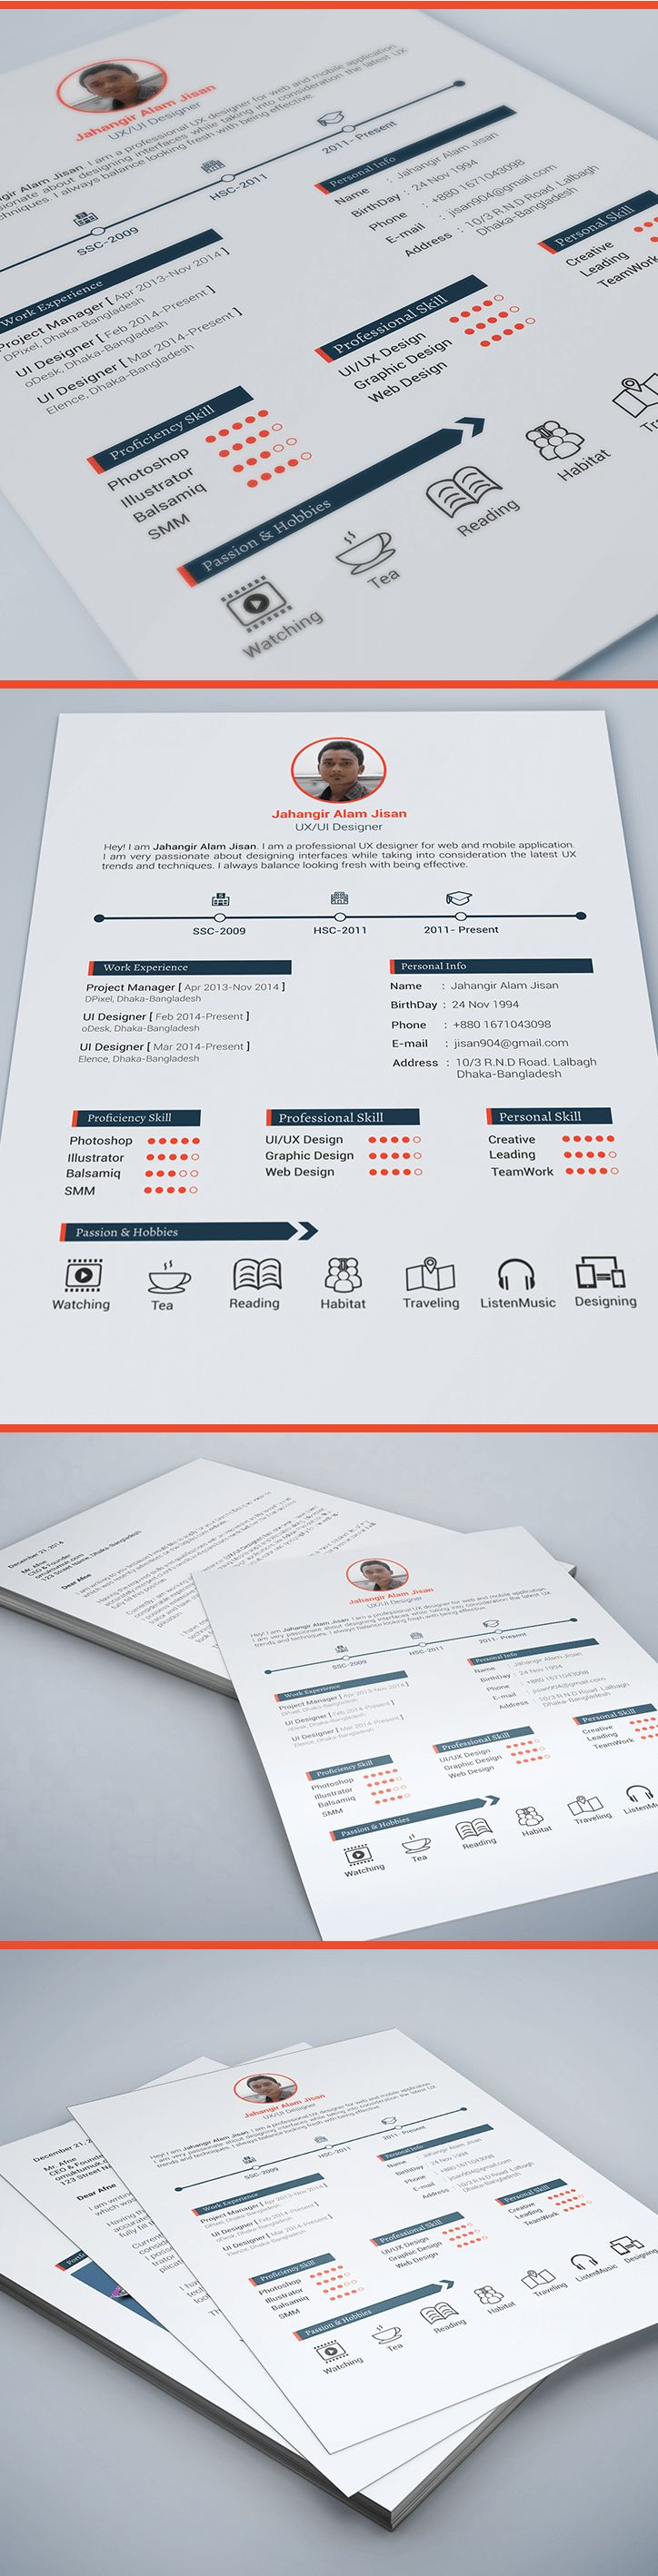 cosmetologist resume%0A   Effective and Free to Use Resume Template Downloads